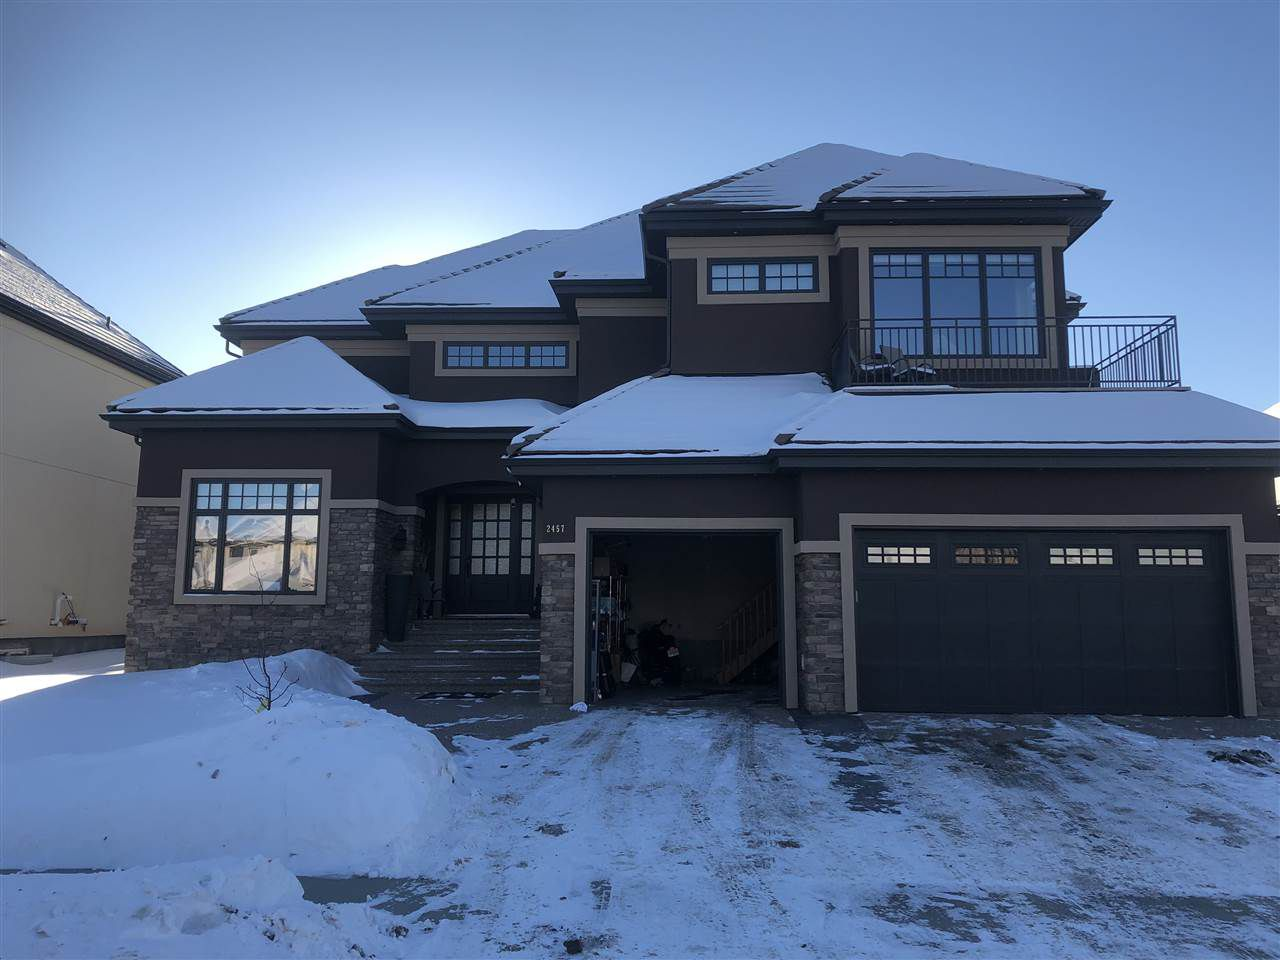 Main Photo: 2457 Cameron Ravine Dr in Edmonton: Zone 20 House for sale : MLS®# E4144971